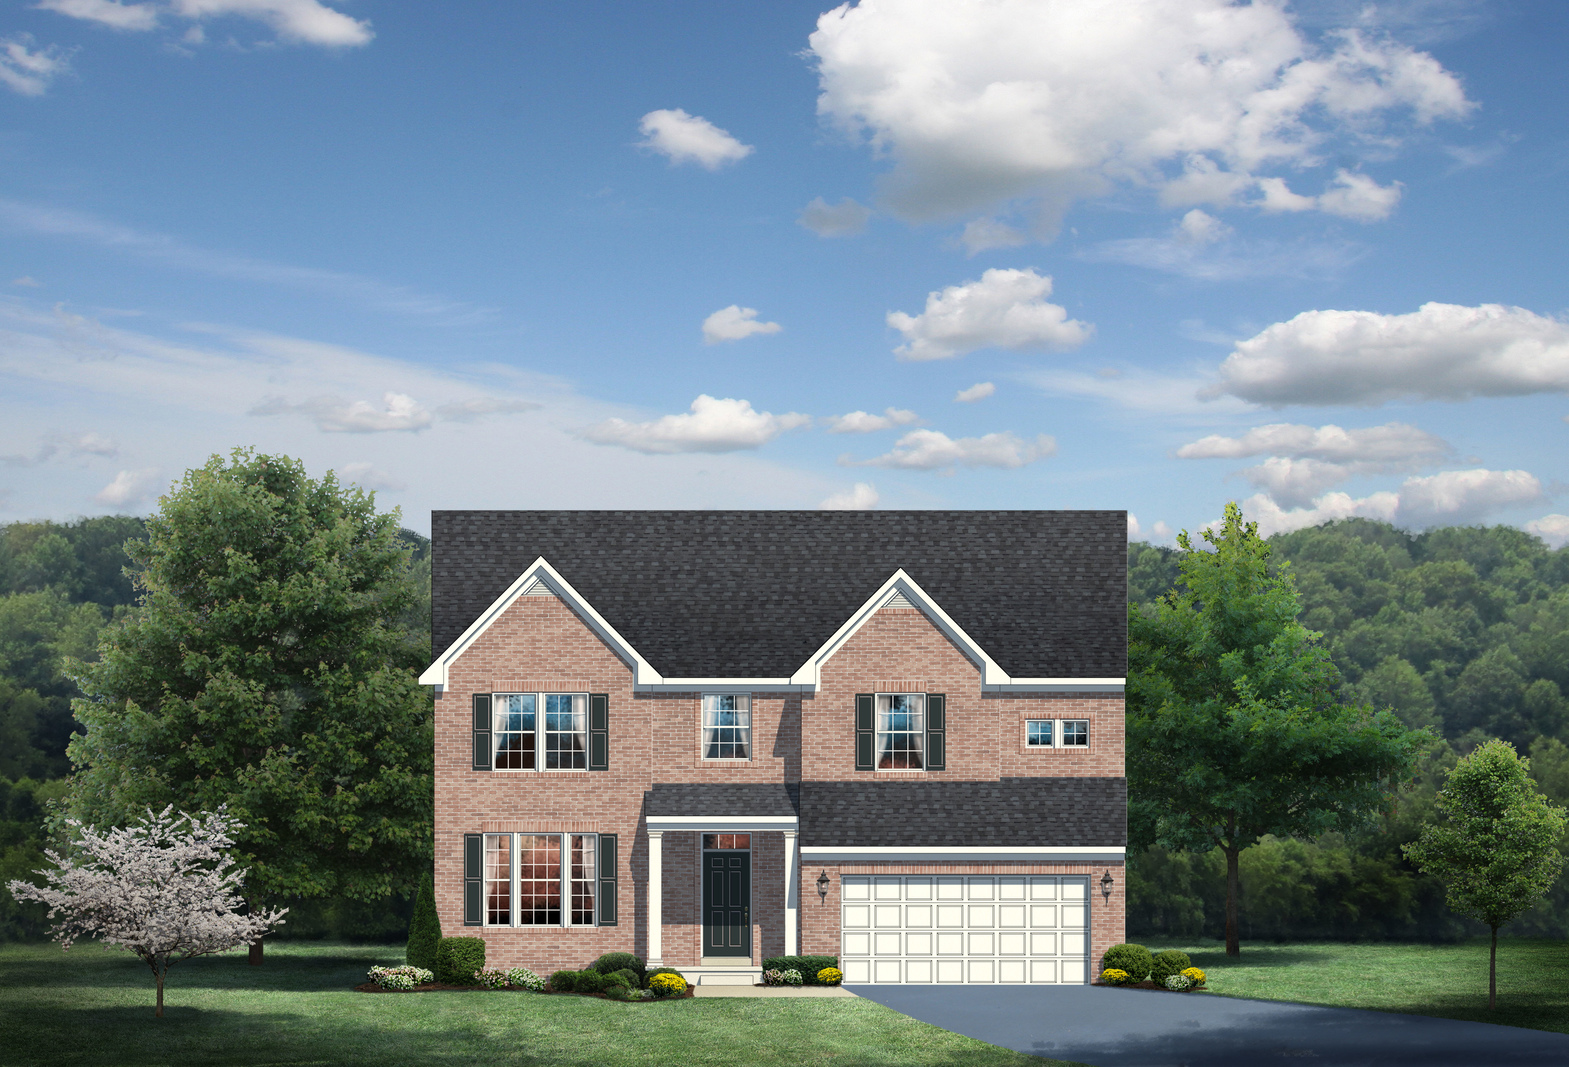 New dunkirk home model for sale heartland homes for Heartland builders